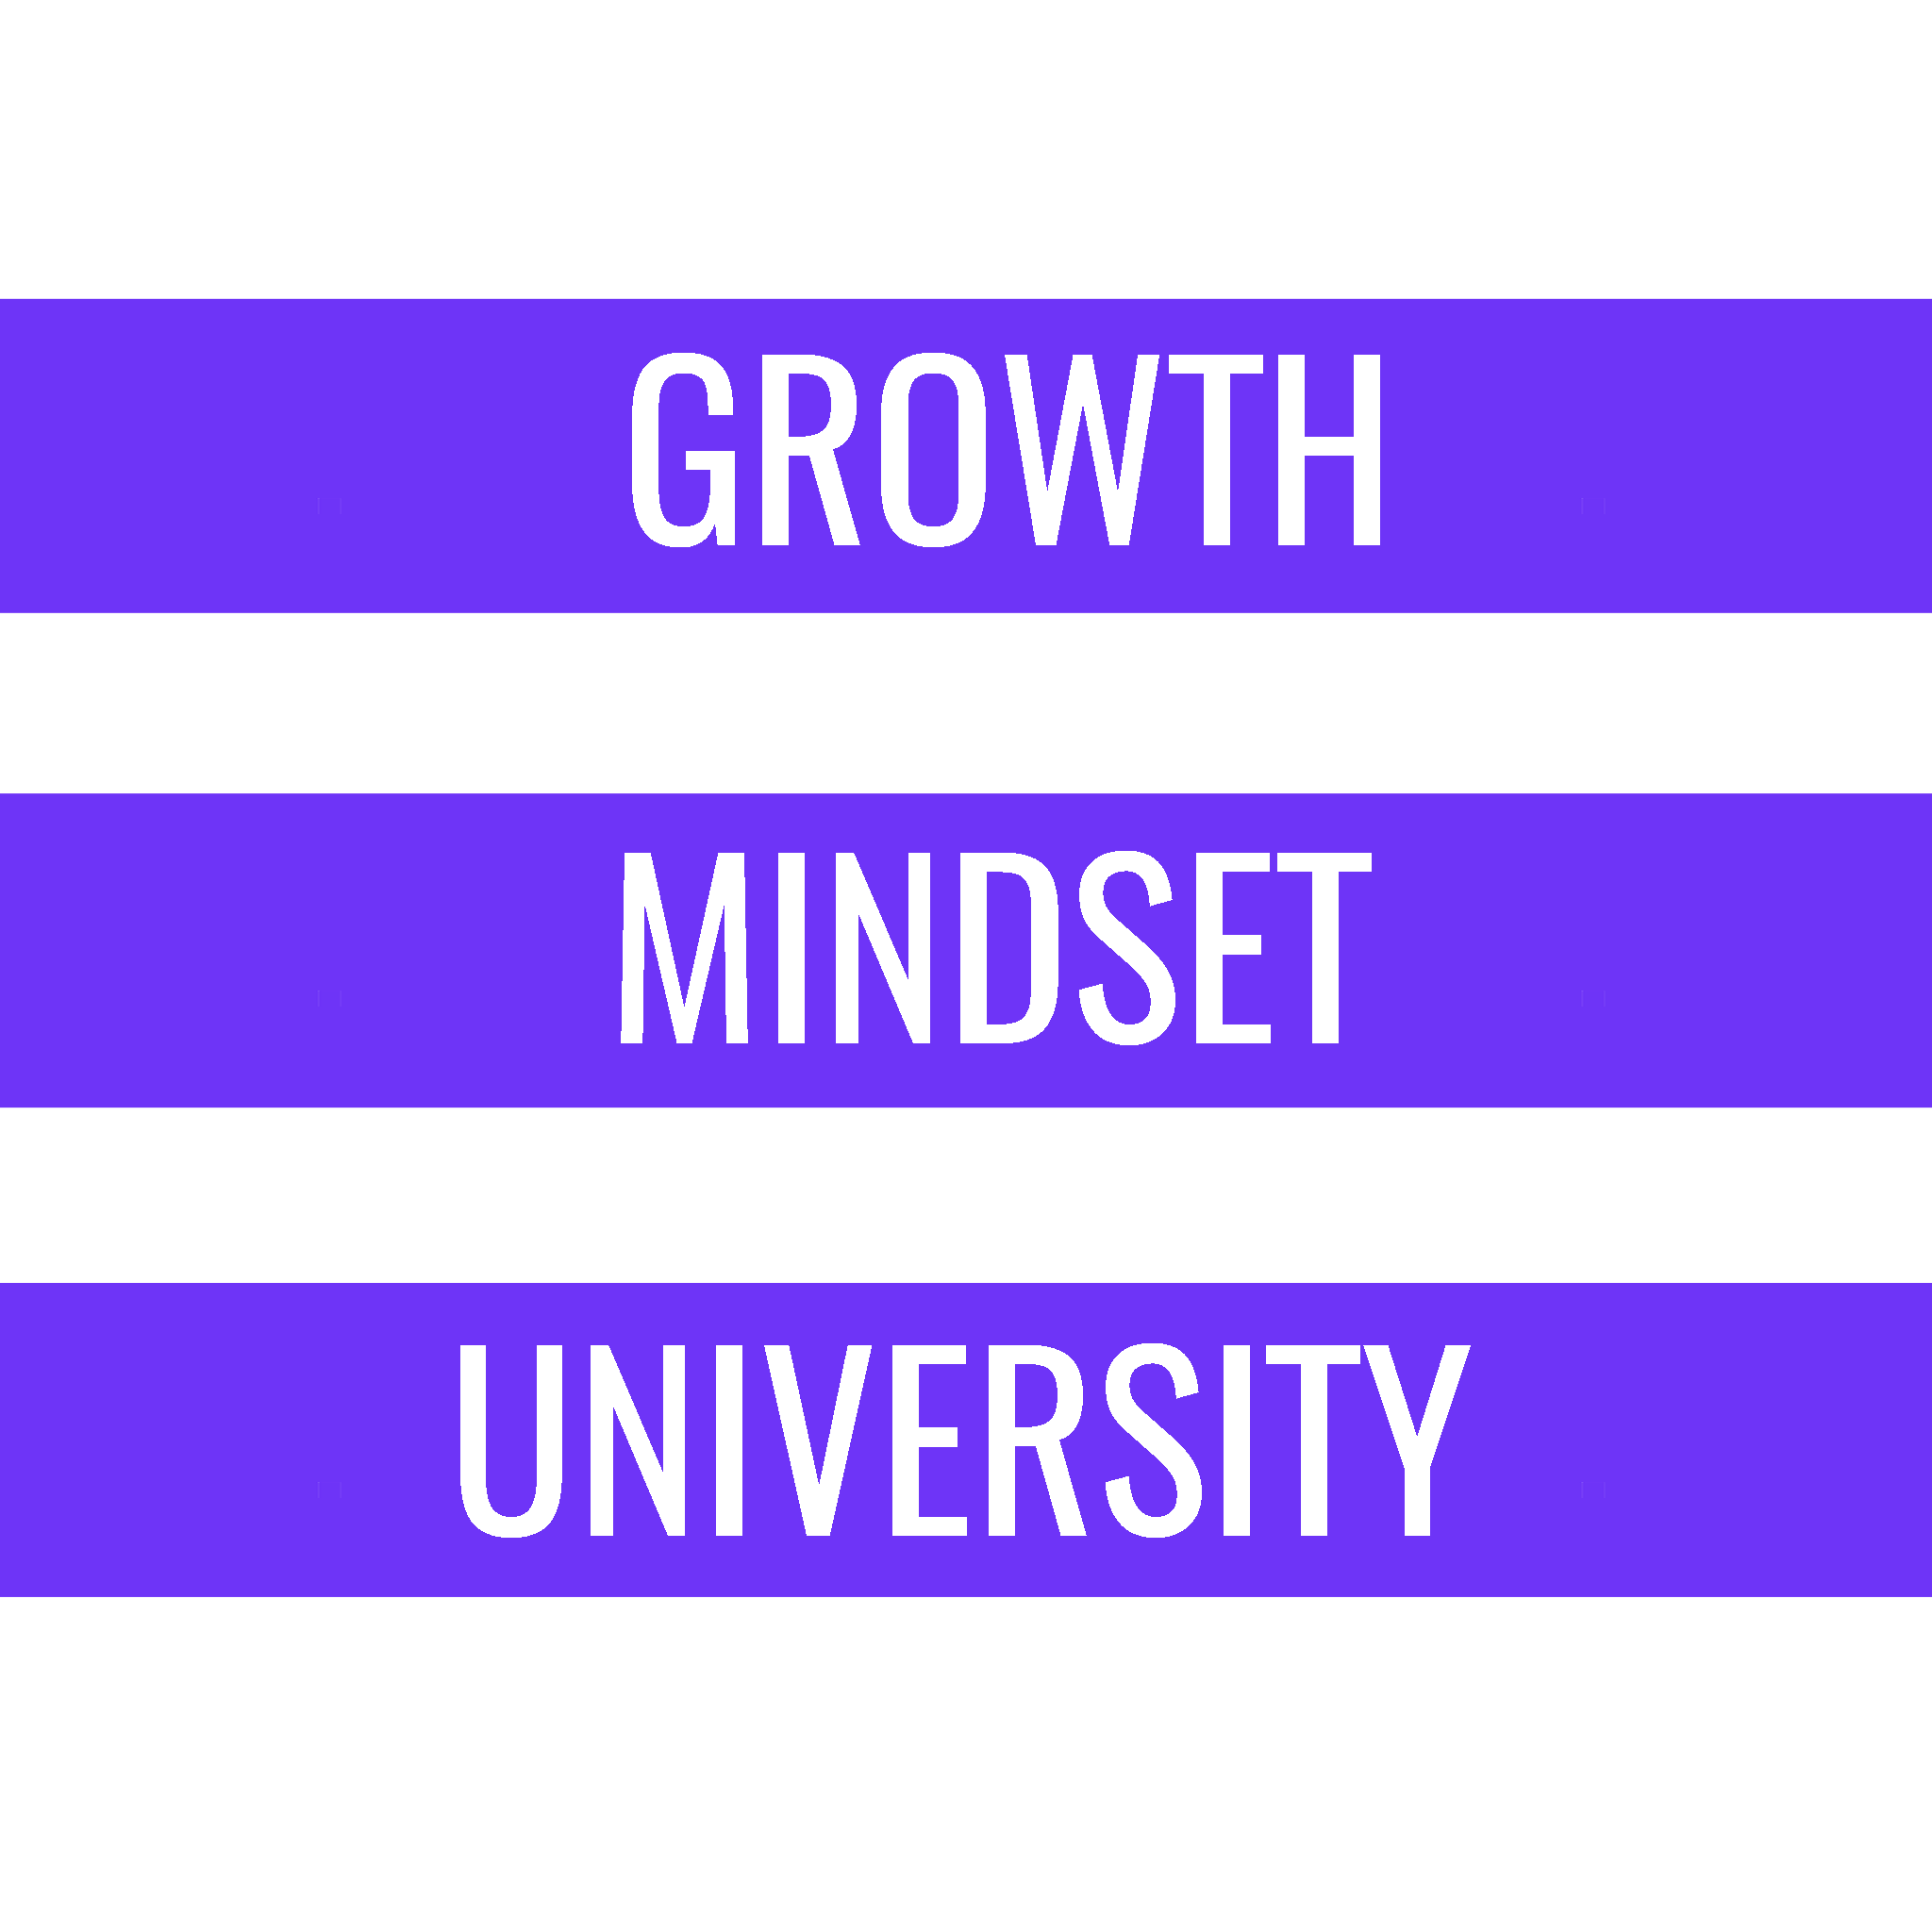 Growth Mindset University